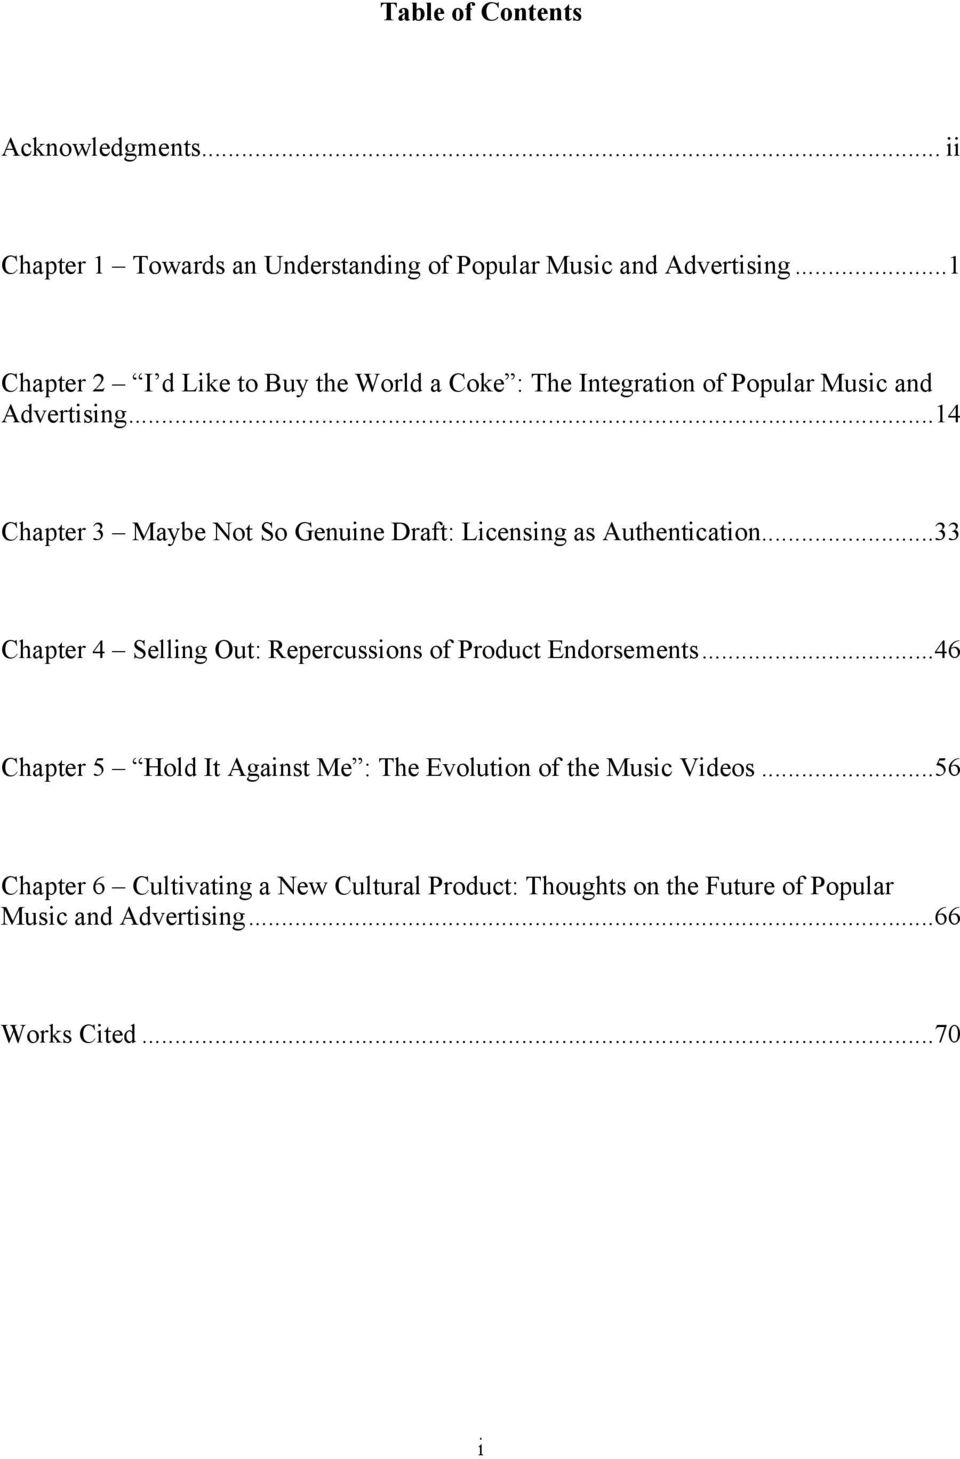 ..14 Chapter 3 Maybe Not So Genuine Draft: Licensing as Authentication...33 Chapter 4 Selling Out: Repercussions of Product Endorsements.